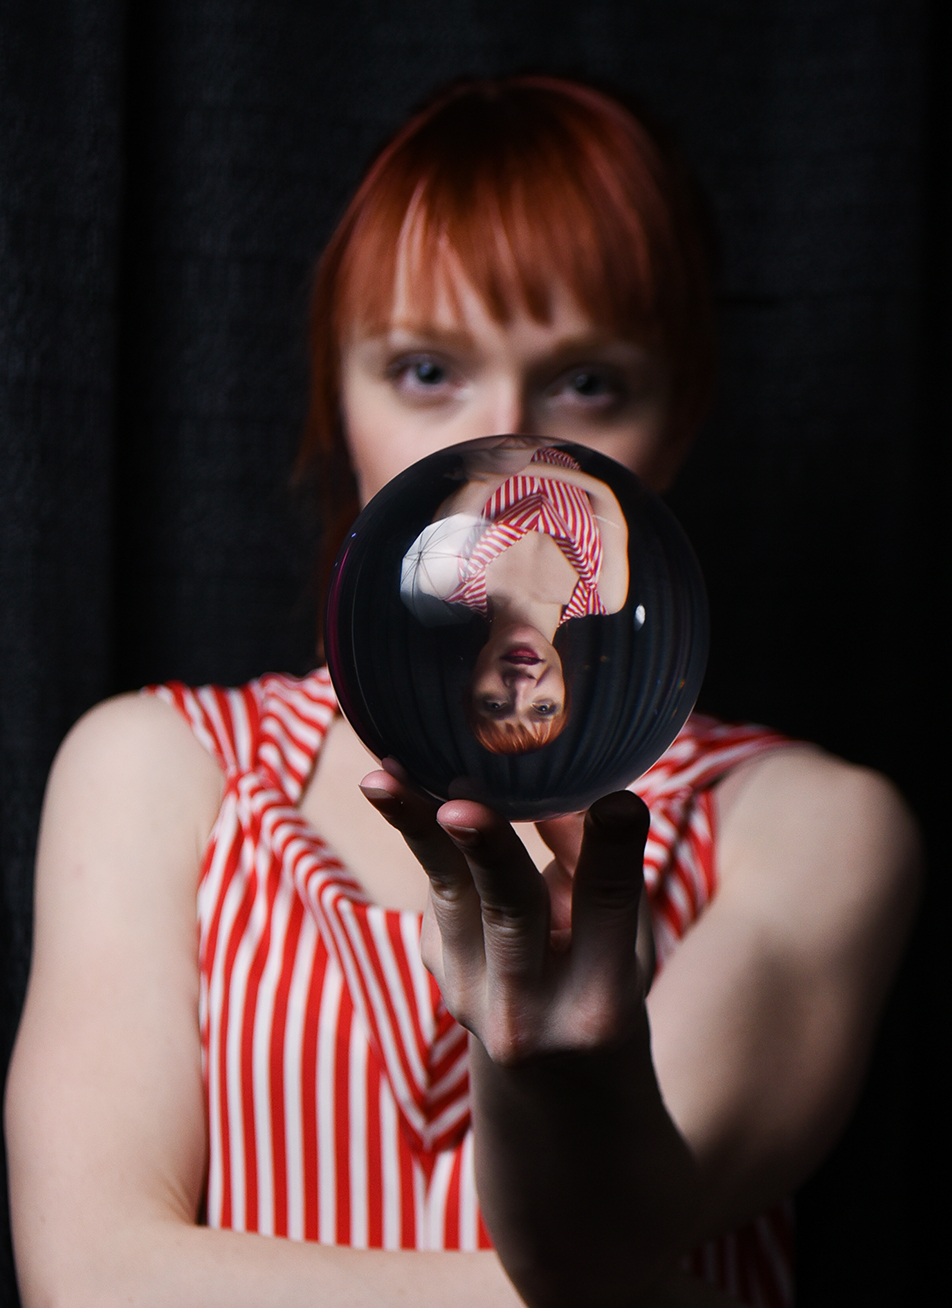 Performance Artist: Lindsay Istace, a performance artist who specializes in the circus arts, poses for a portrait at the TABOO Expo in Edmonton on Saturday, Nov. 21, 2015. Istace can juggle fire with ease or spin a glass ball seamlessly over her shoulders. (Photo by Elizabeth Cameron/The Press)